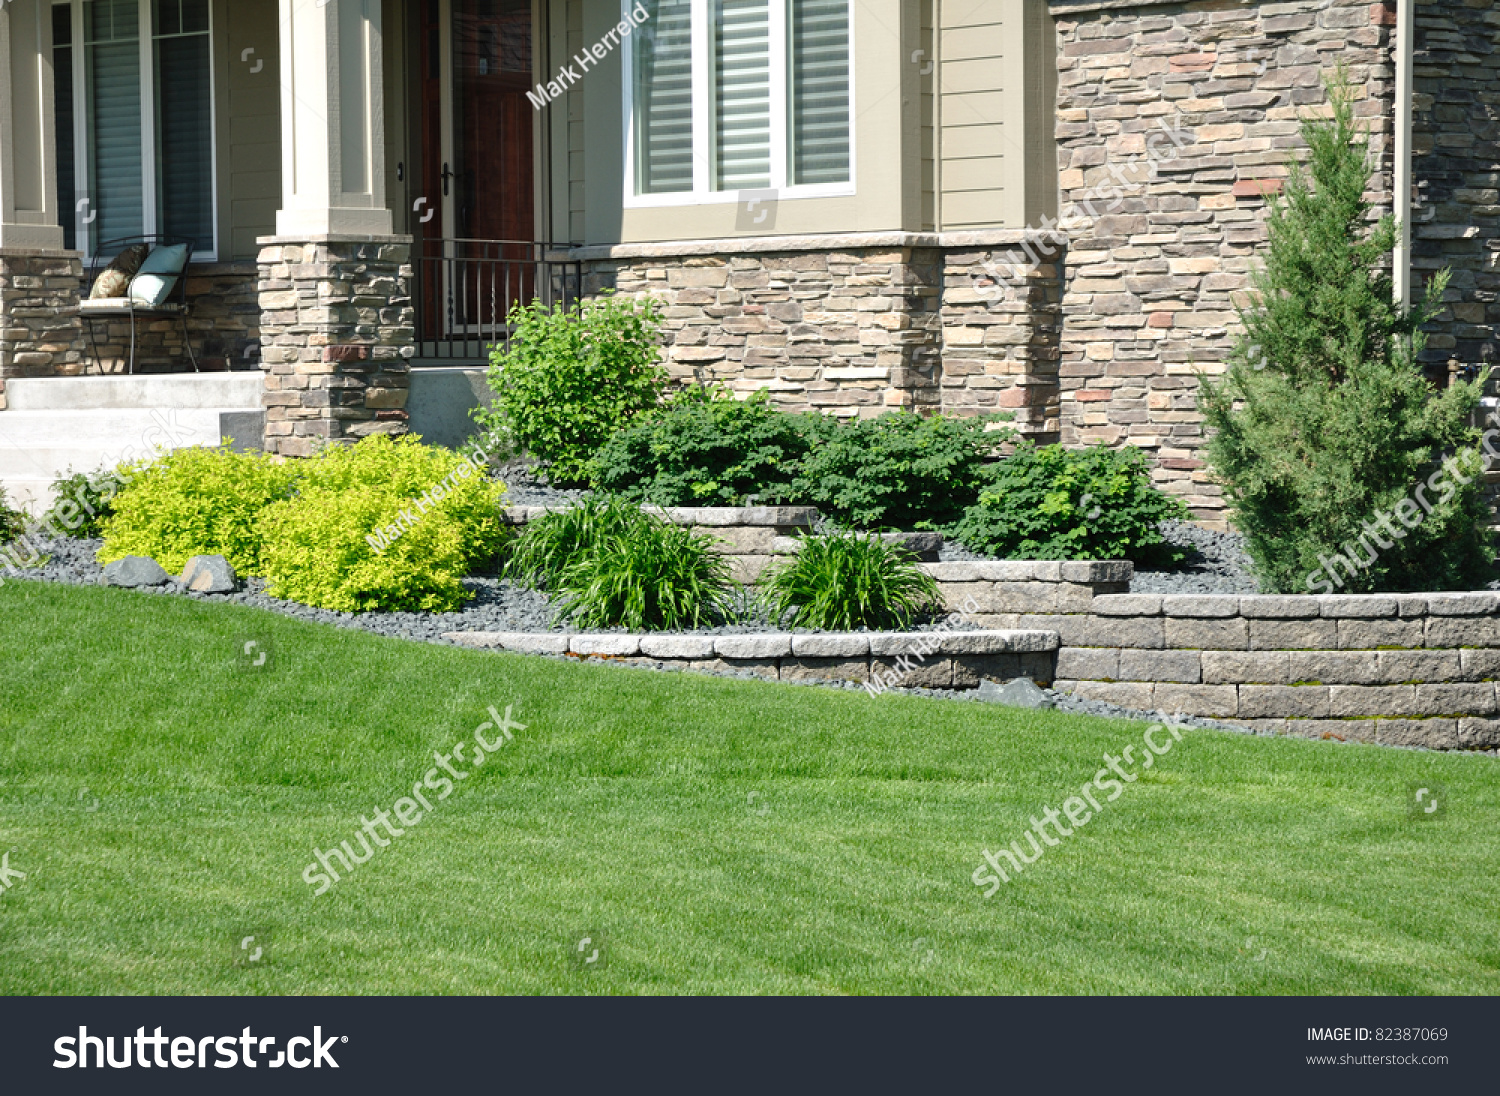 Residential House Landscaping : Landscaping retaining wall residential home stock photo